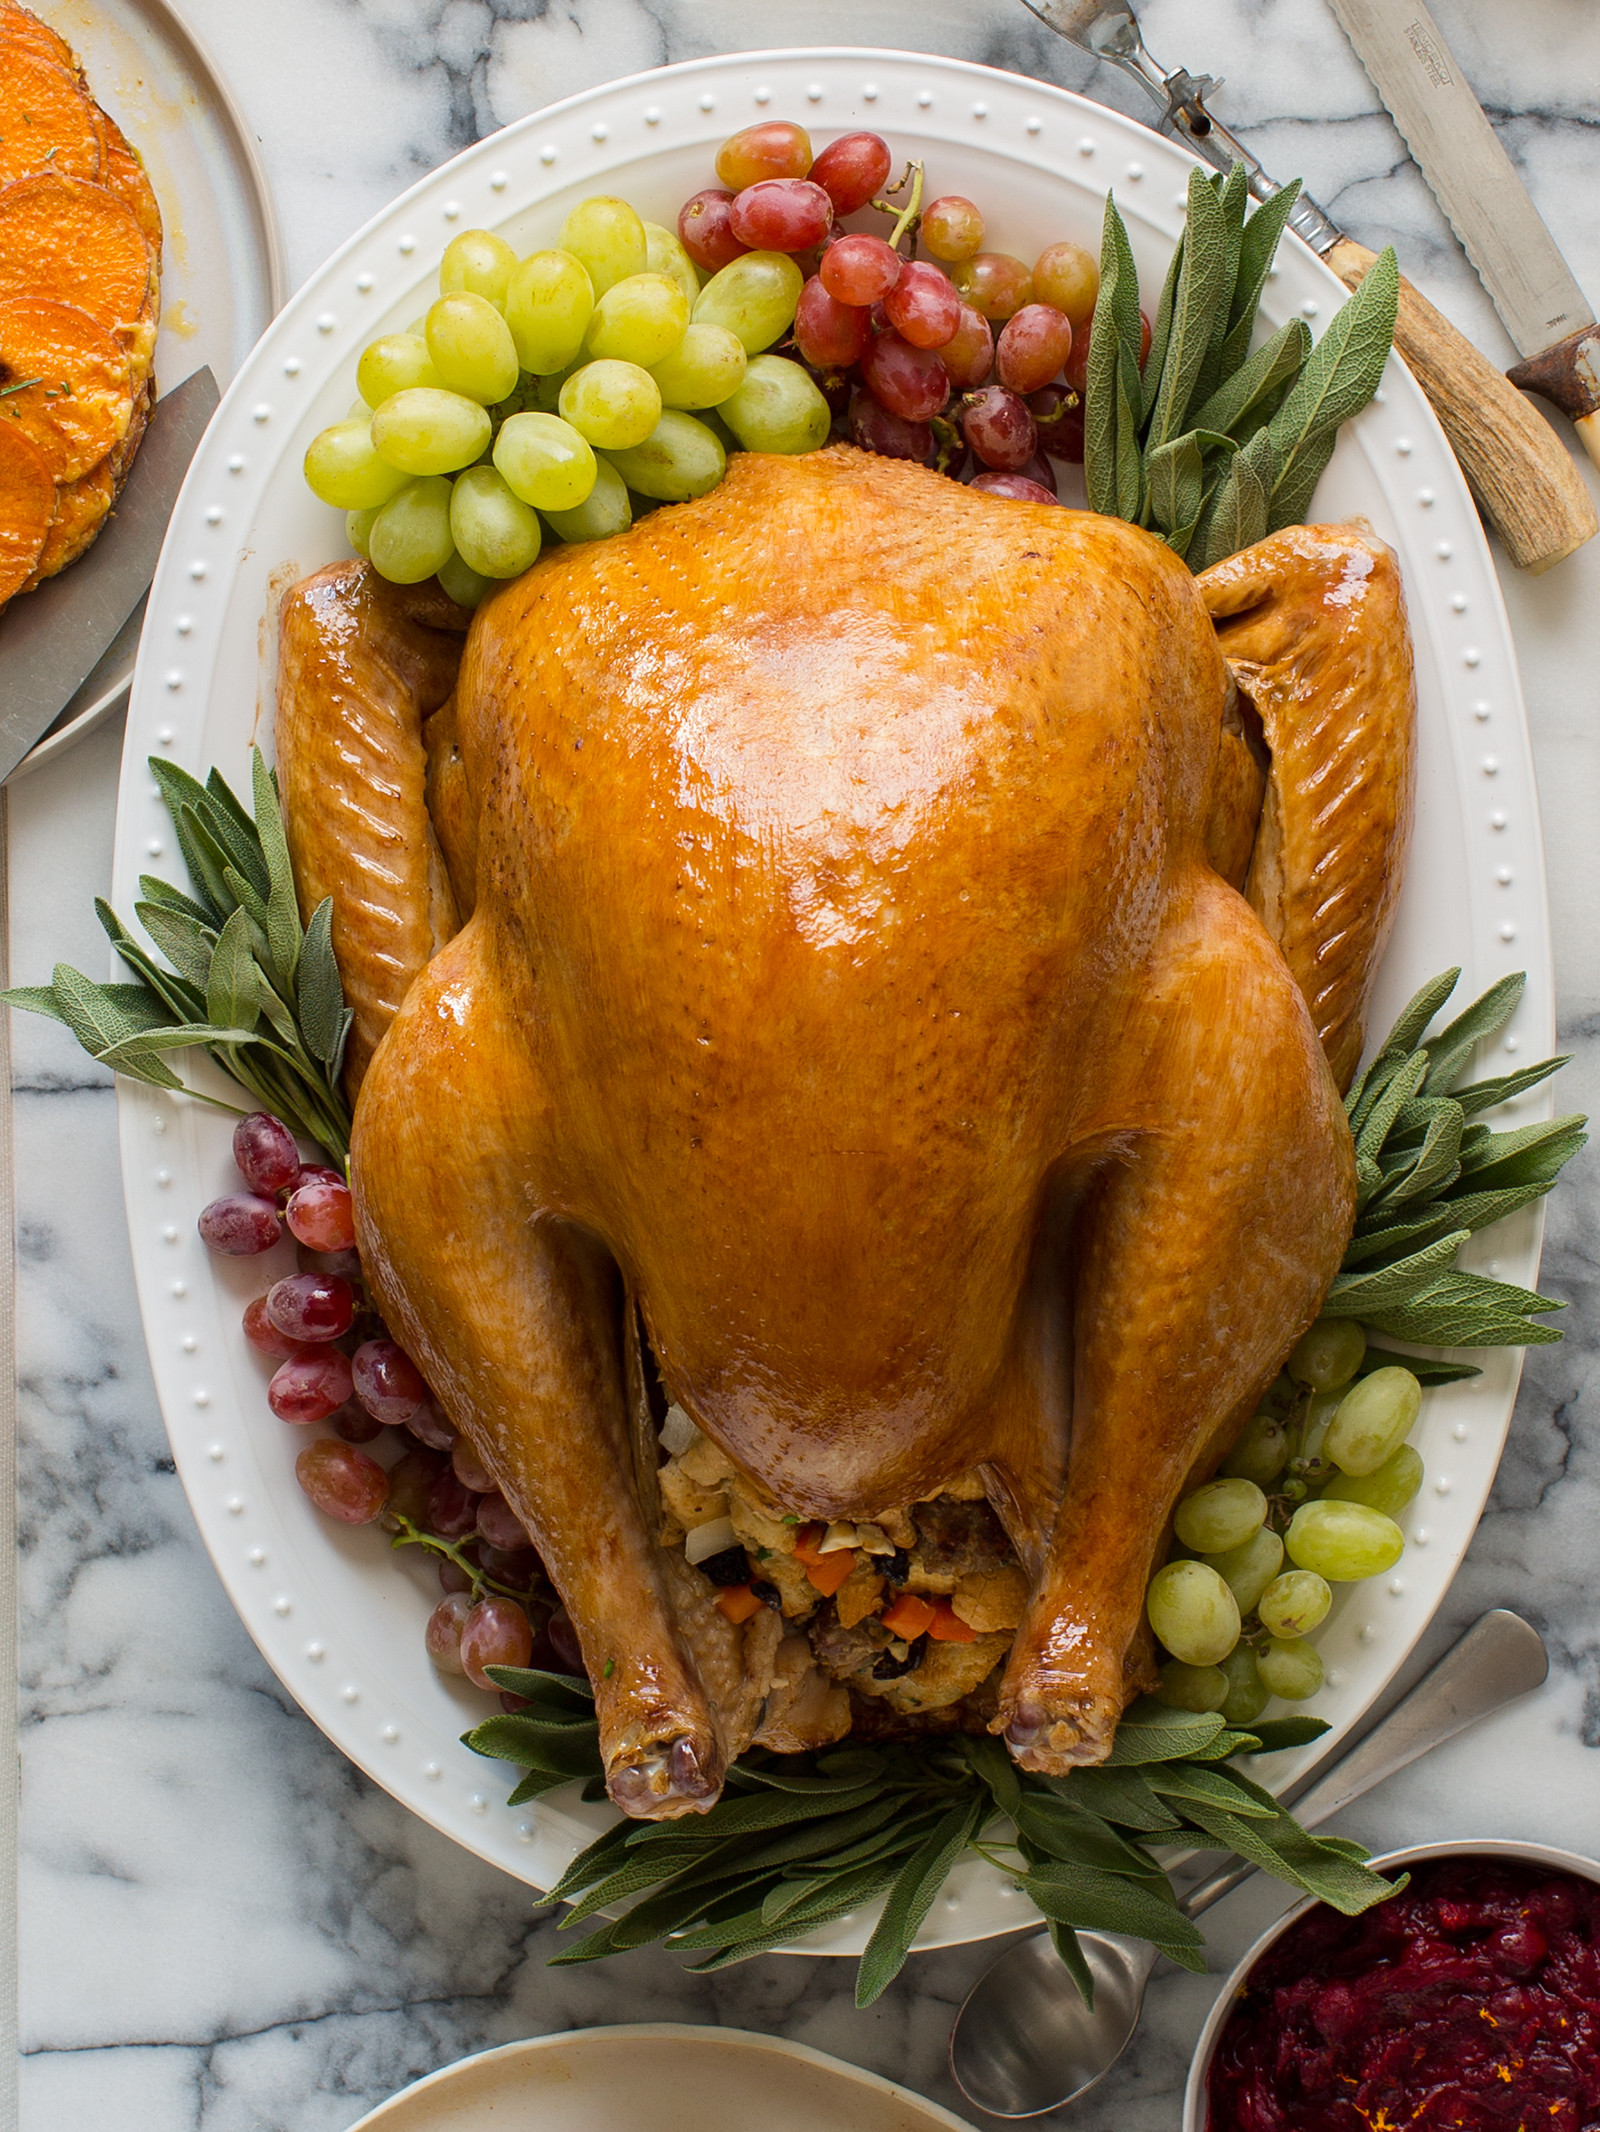 Turkey Recipe For Thanksgiving  Citrus and Herb Roasted Turkey Thanksgiving